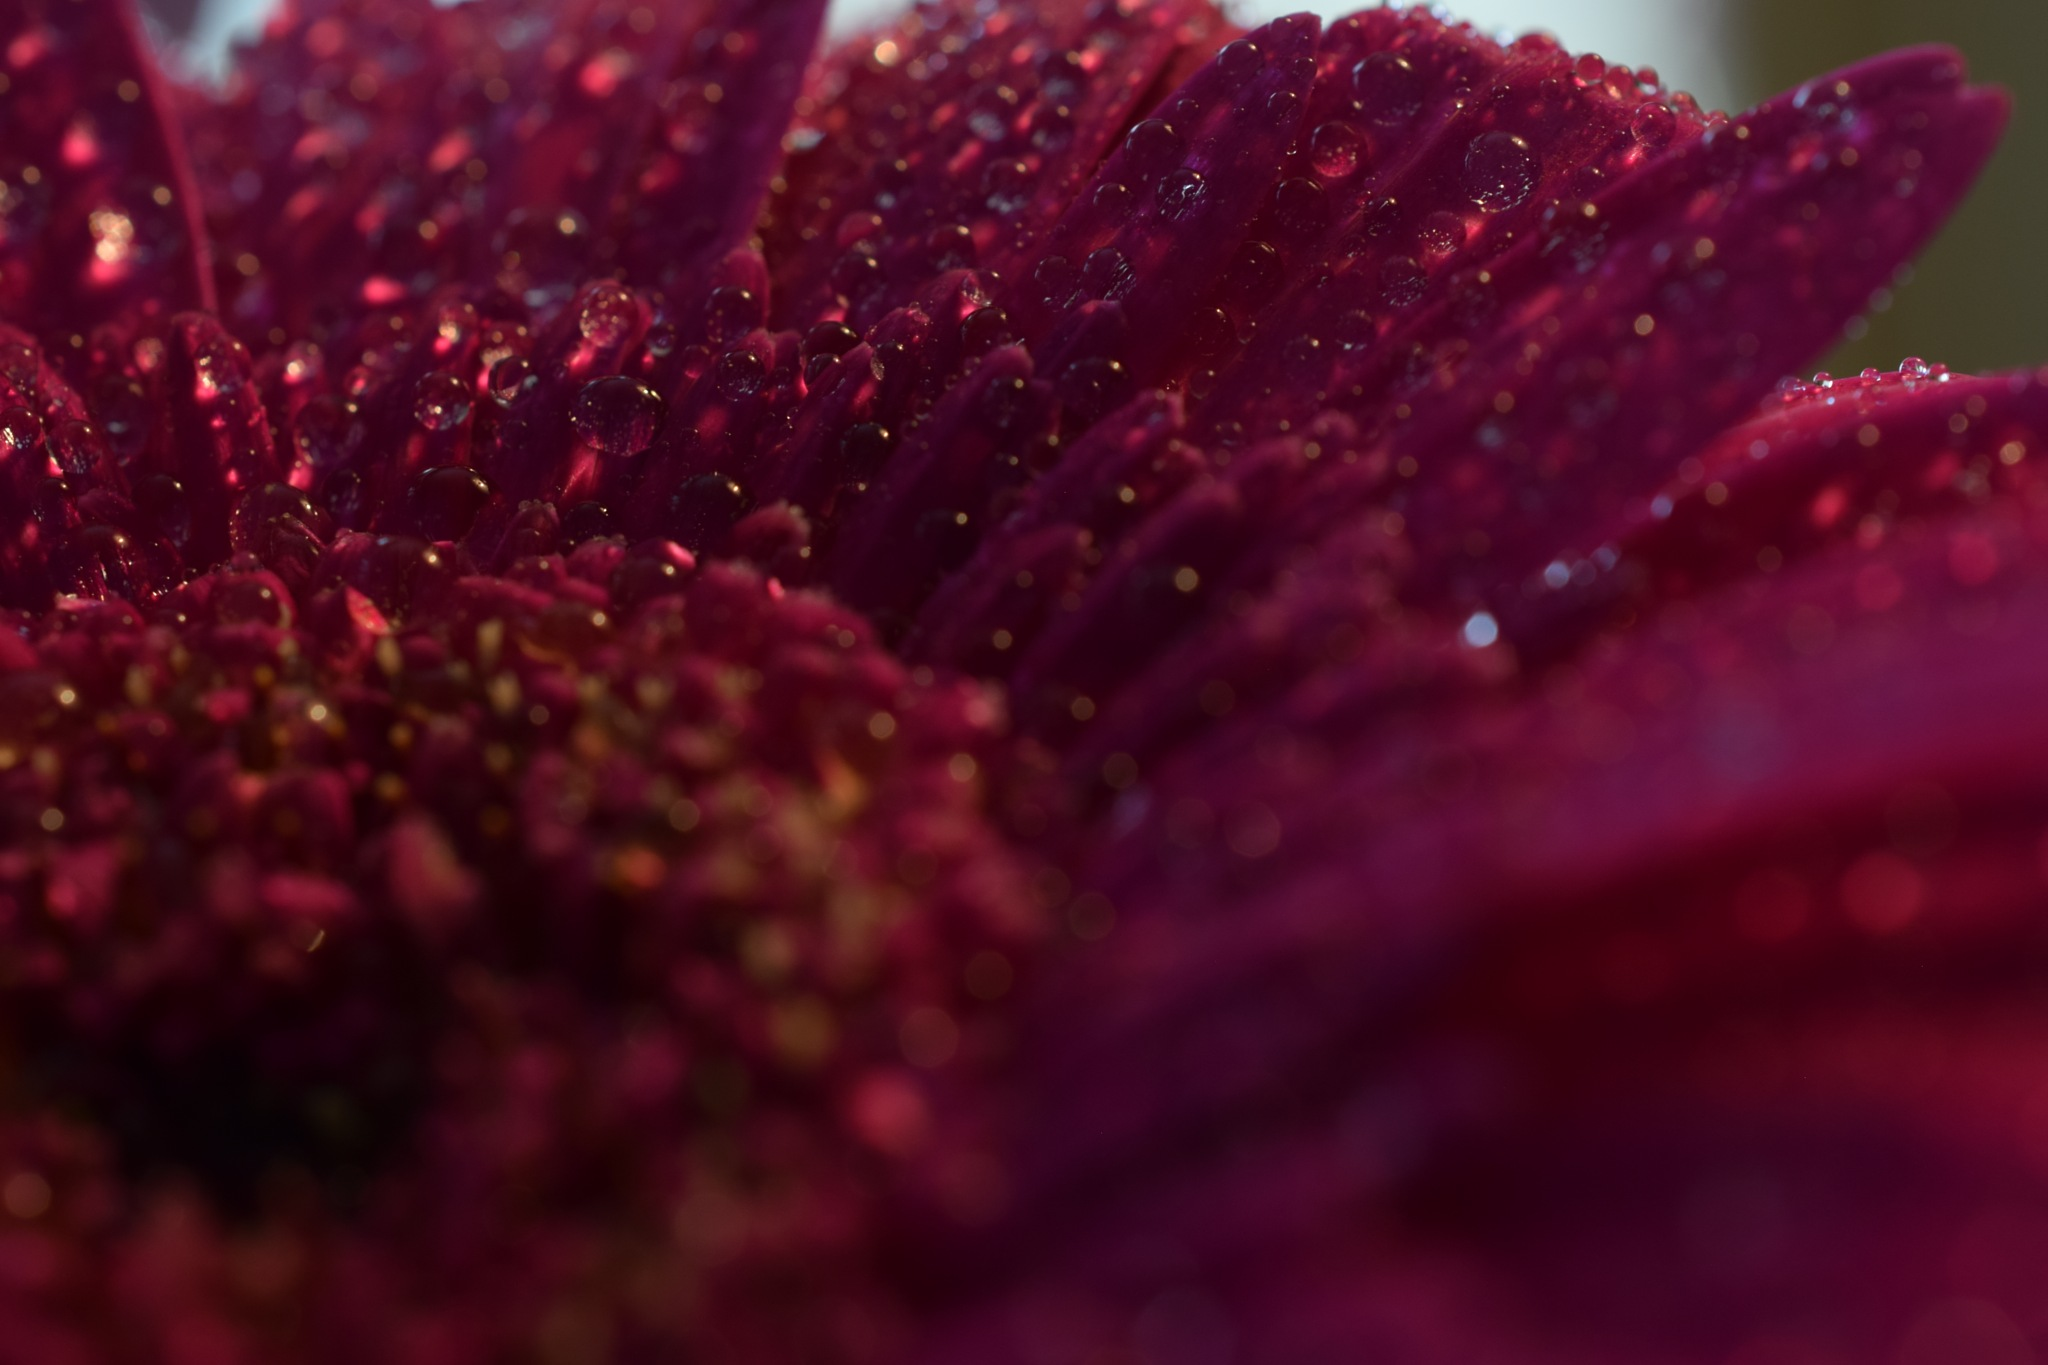 Droplets on germini flower by Theresia Buskas